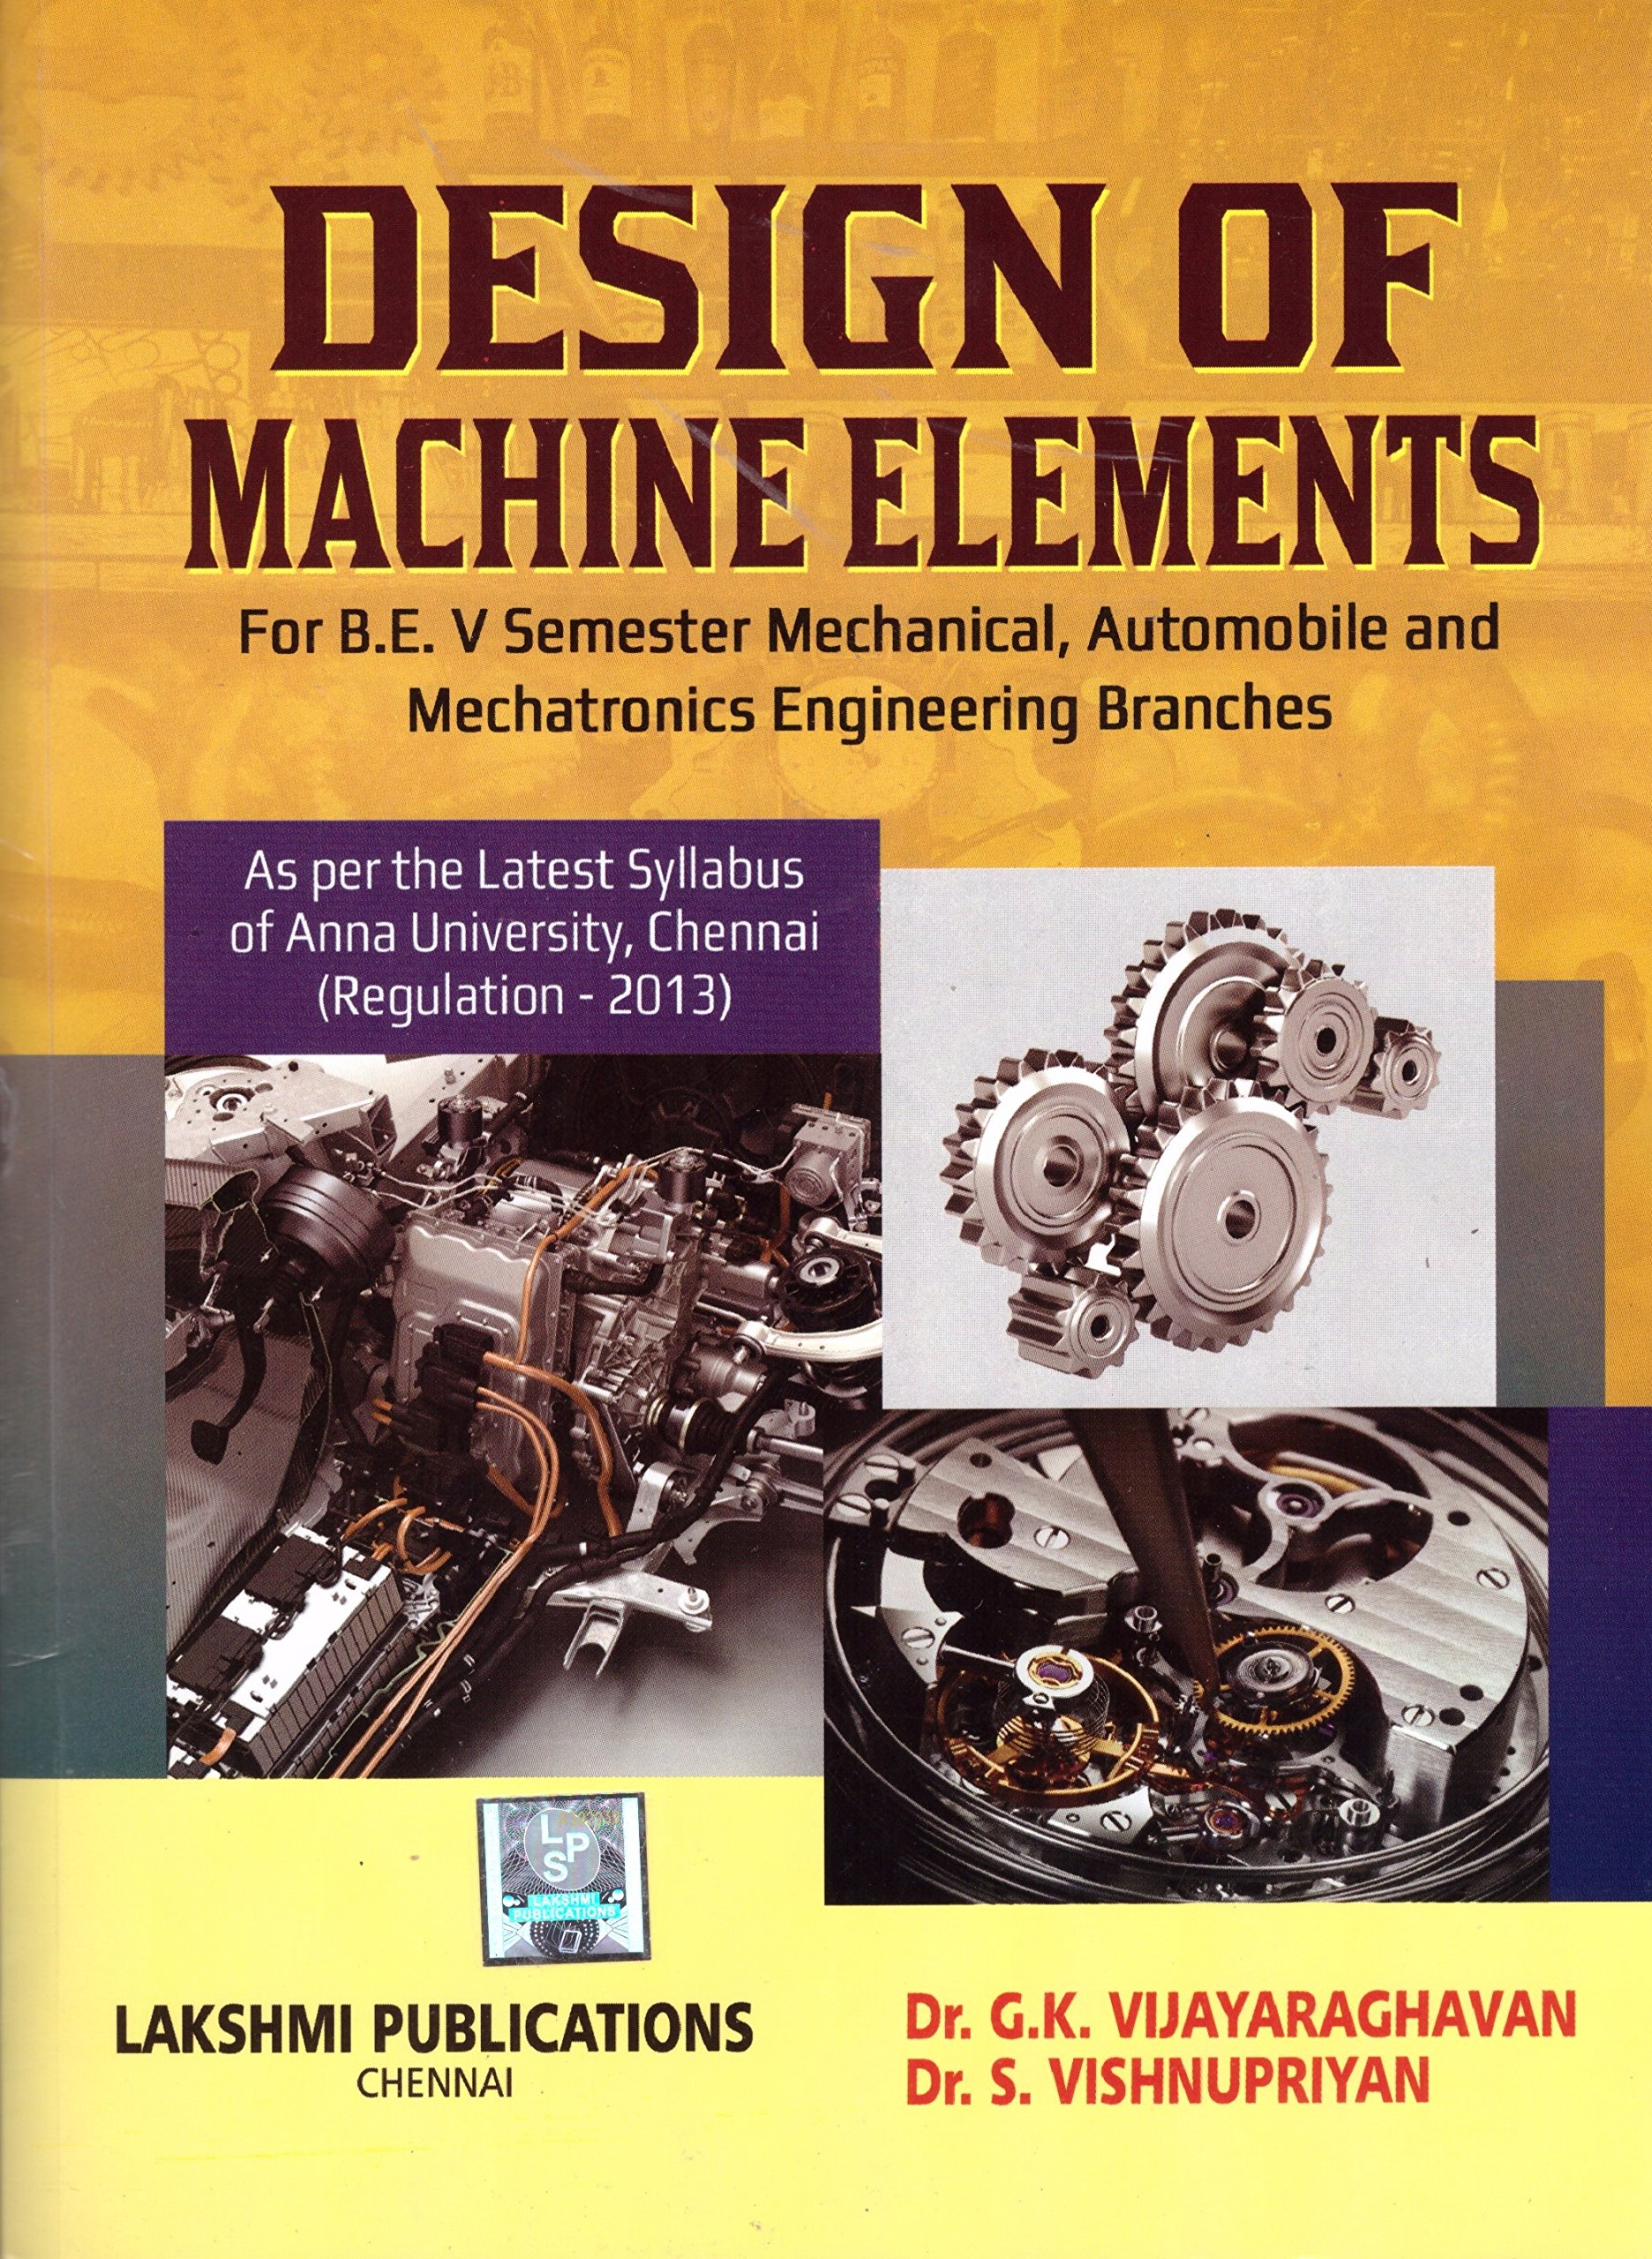 Buy Design Of Machine Elements Book Online at Low Prices in India